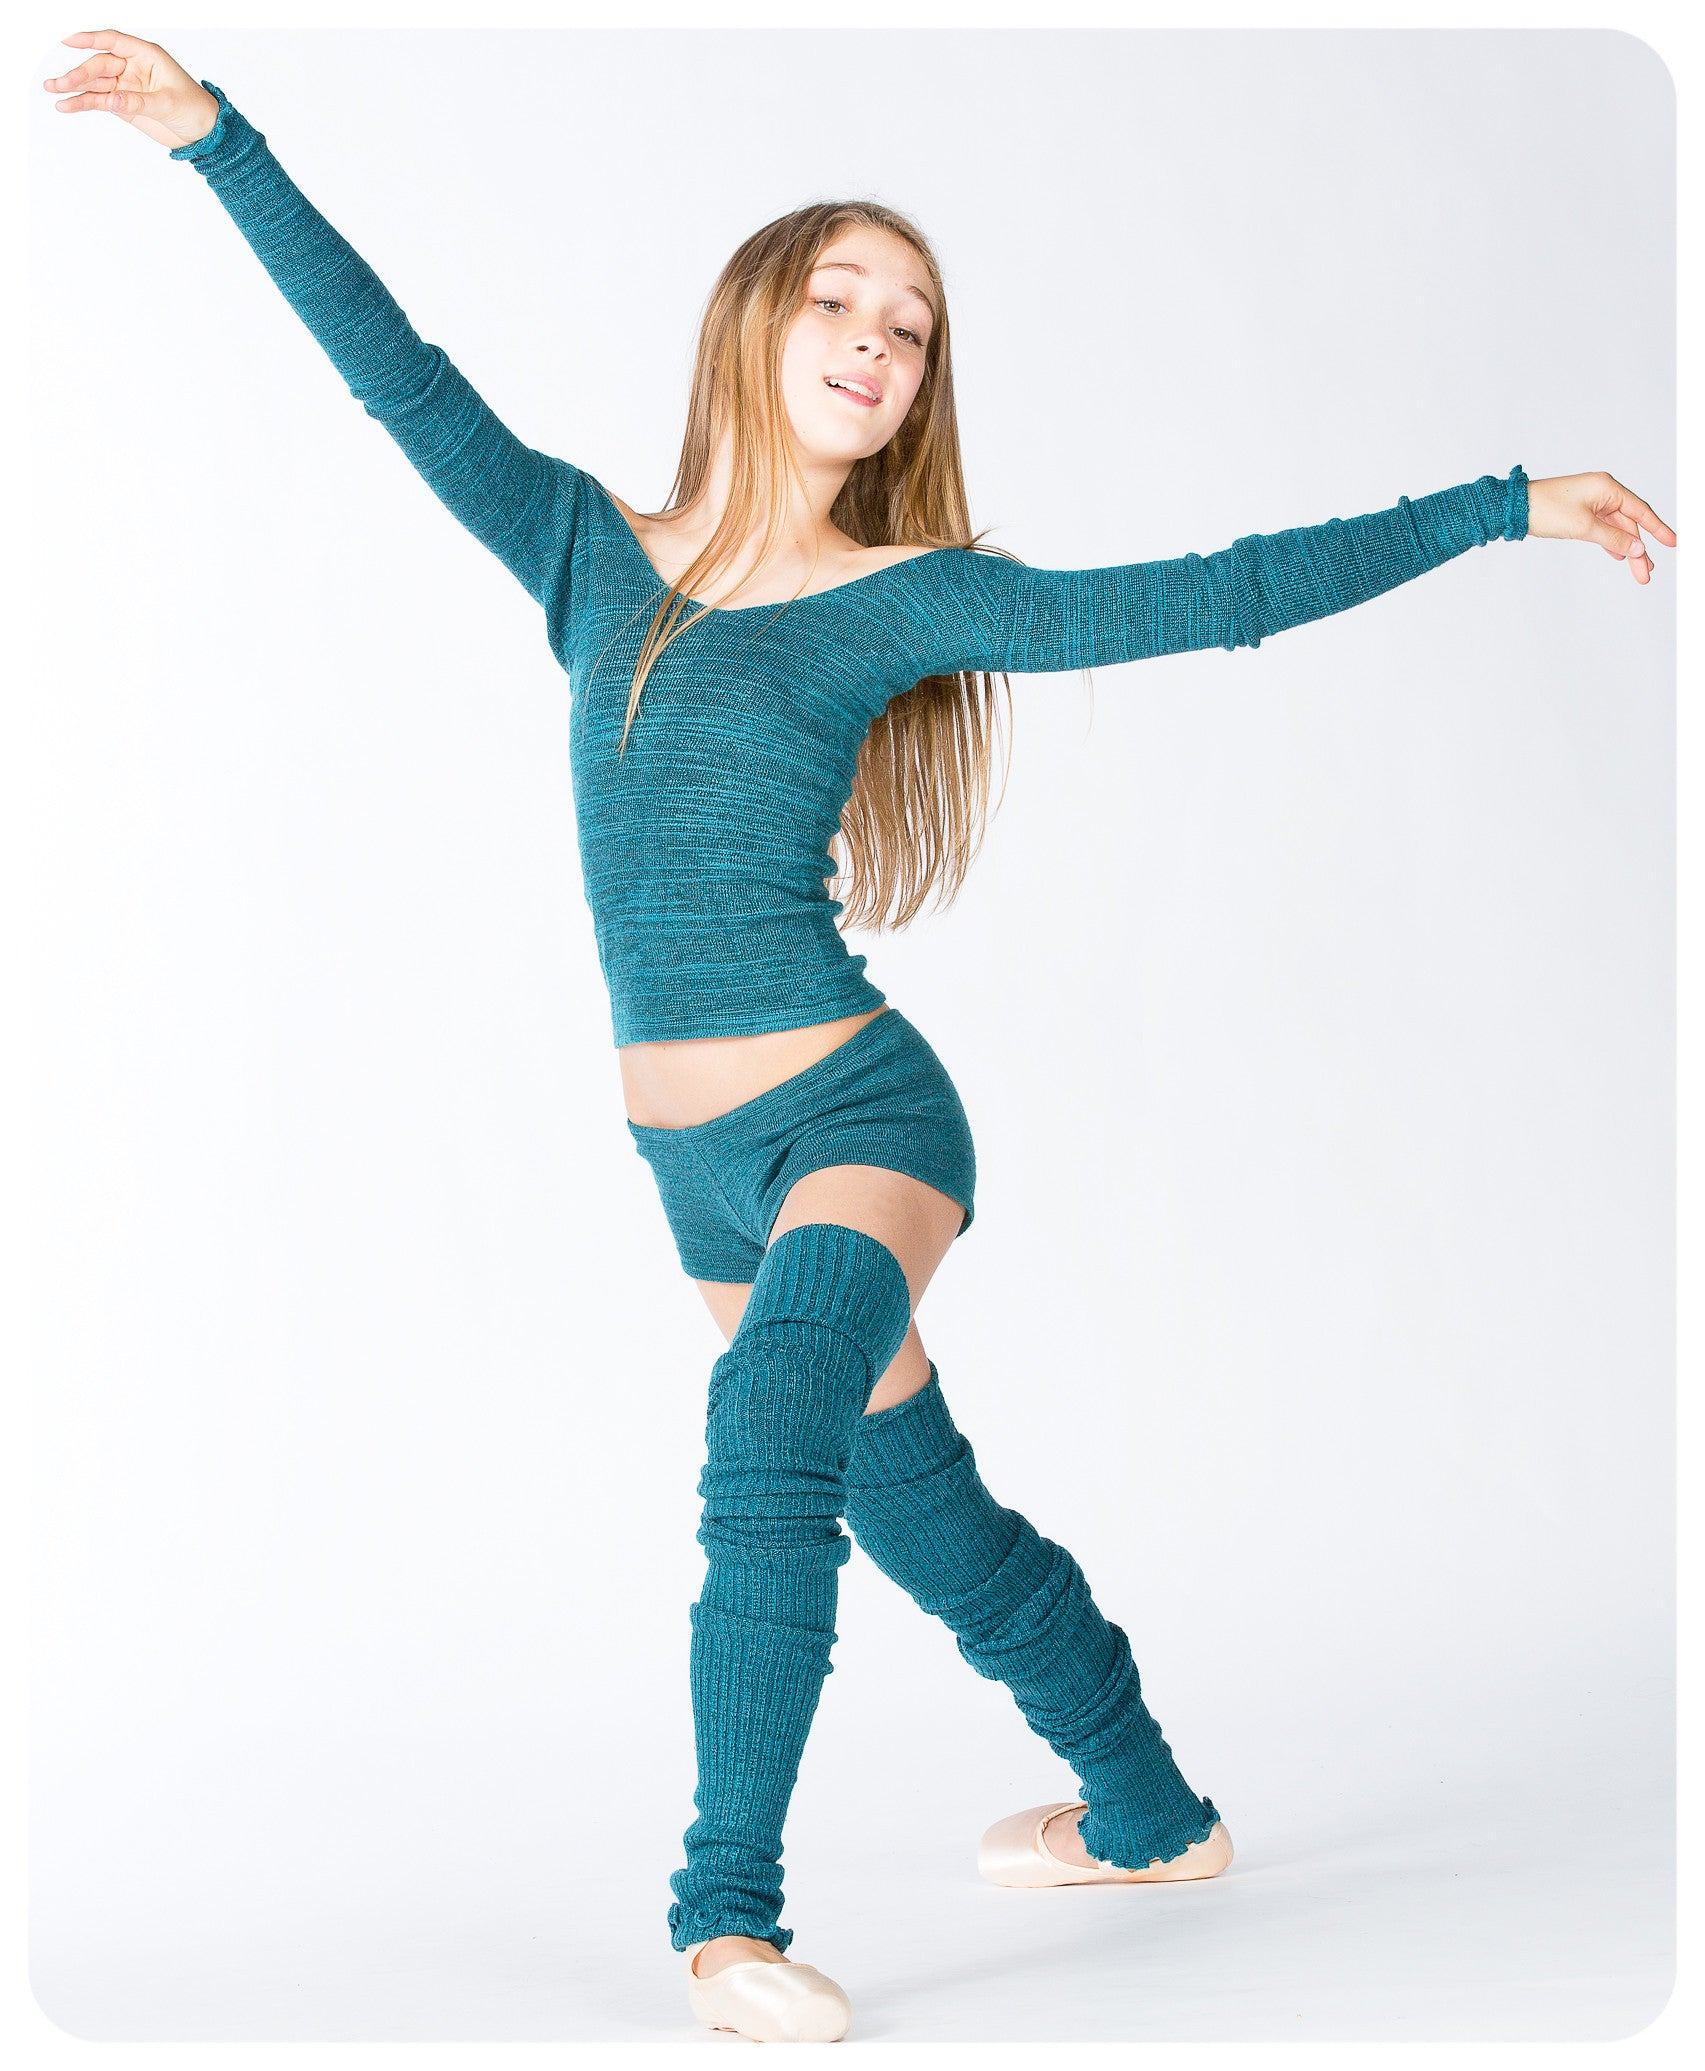 Thigh High Leg Warmers, Boy Shorts & Off Shoulder Boat Neck Top 3 Piece Stretch Knit Set by KD dance